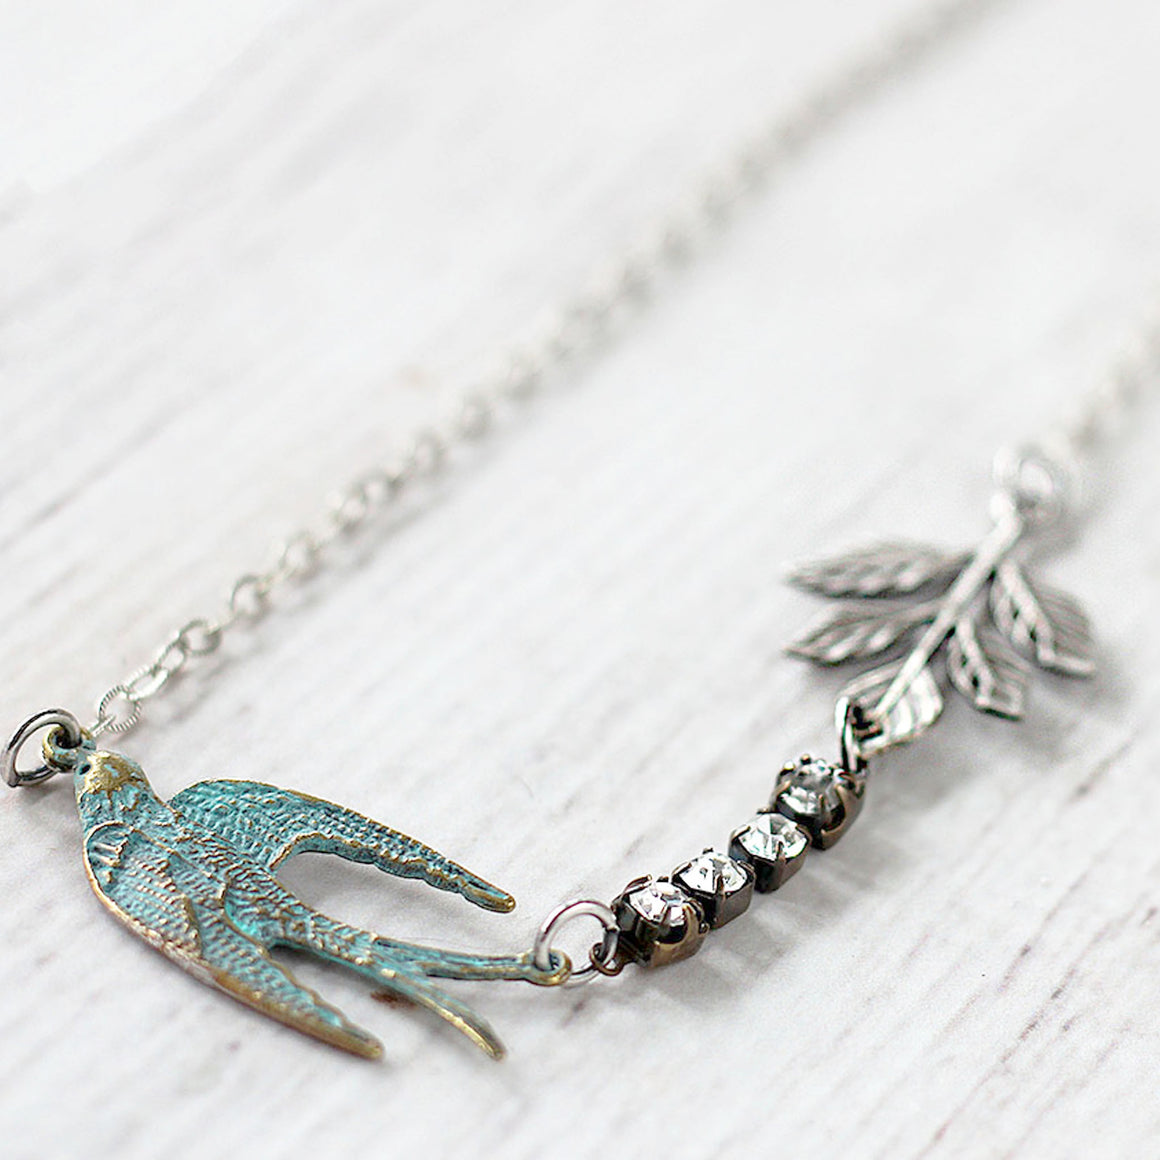 Flying Swallow Bird Necklace - Patina Blue and Silver close